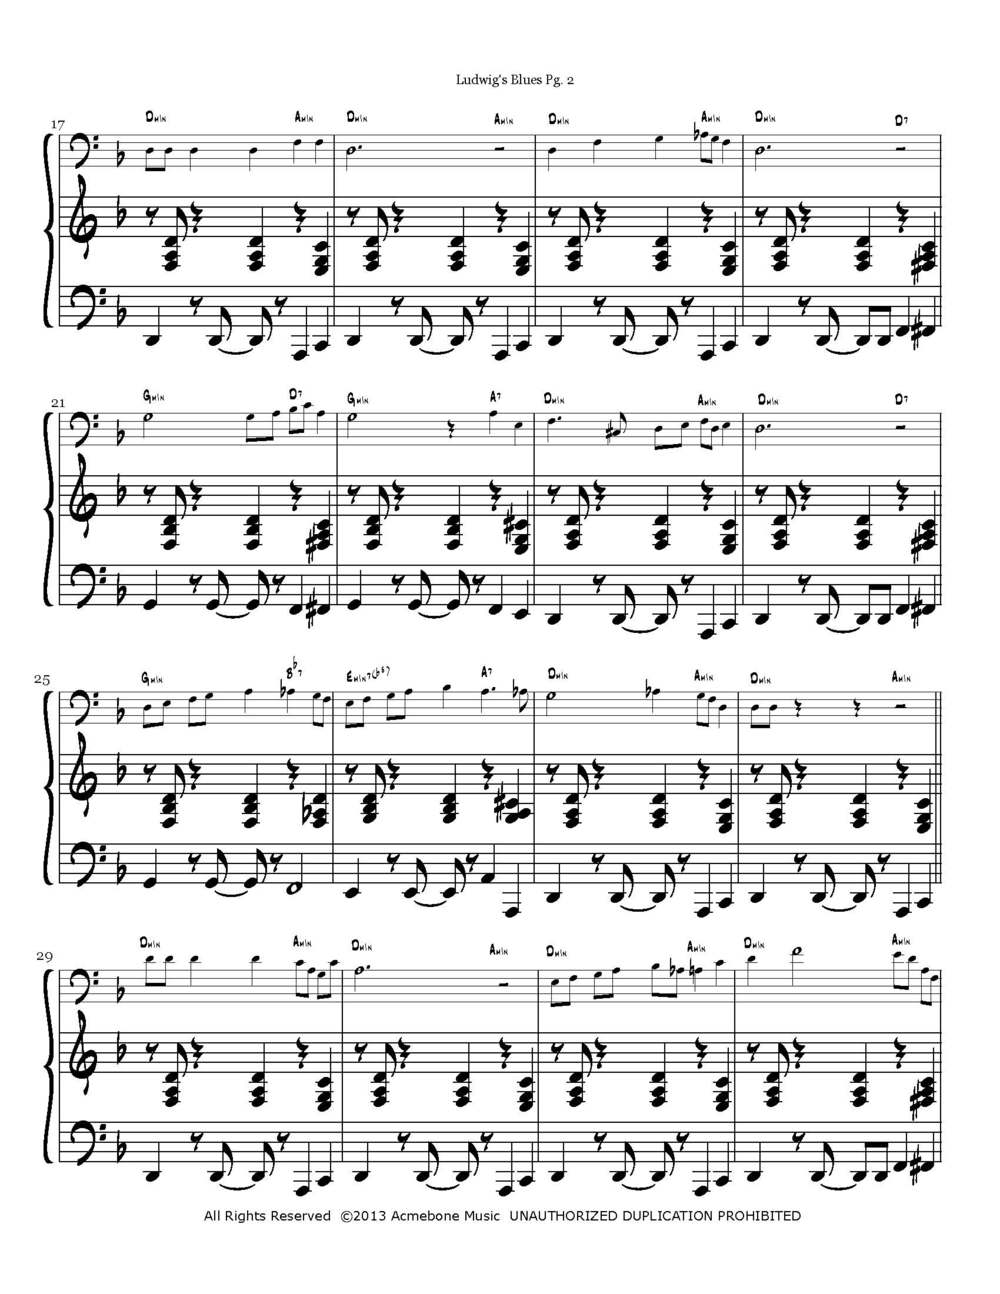 Ludwig's Blues_download_from_acmebone.com_Page_5.jpg